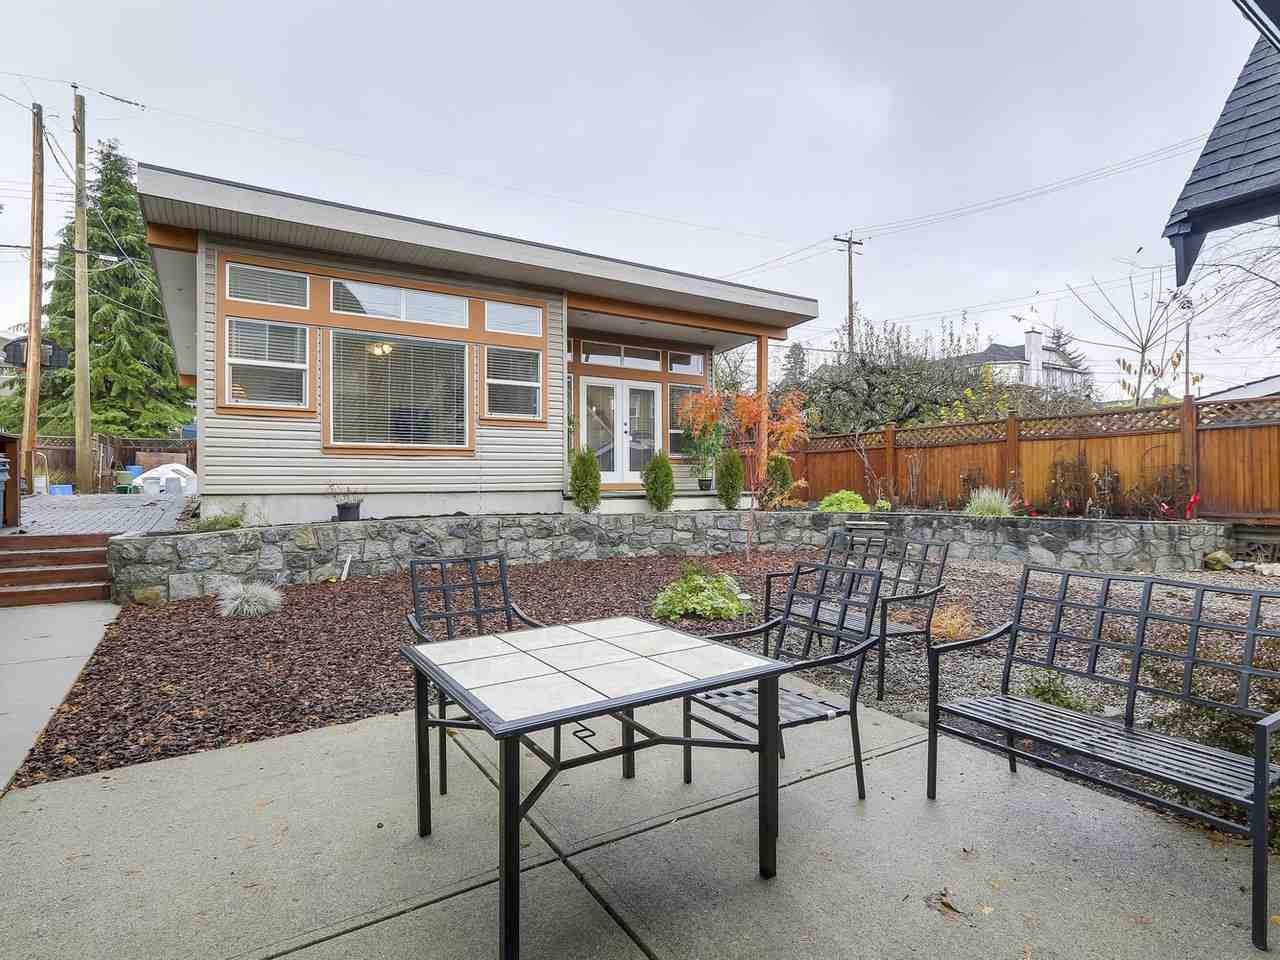 Photo 13: Photos: 658 E 4TH STREET in North Vancouver: Queensbury House for sale : MLS®# R2222993